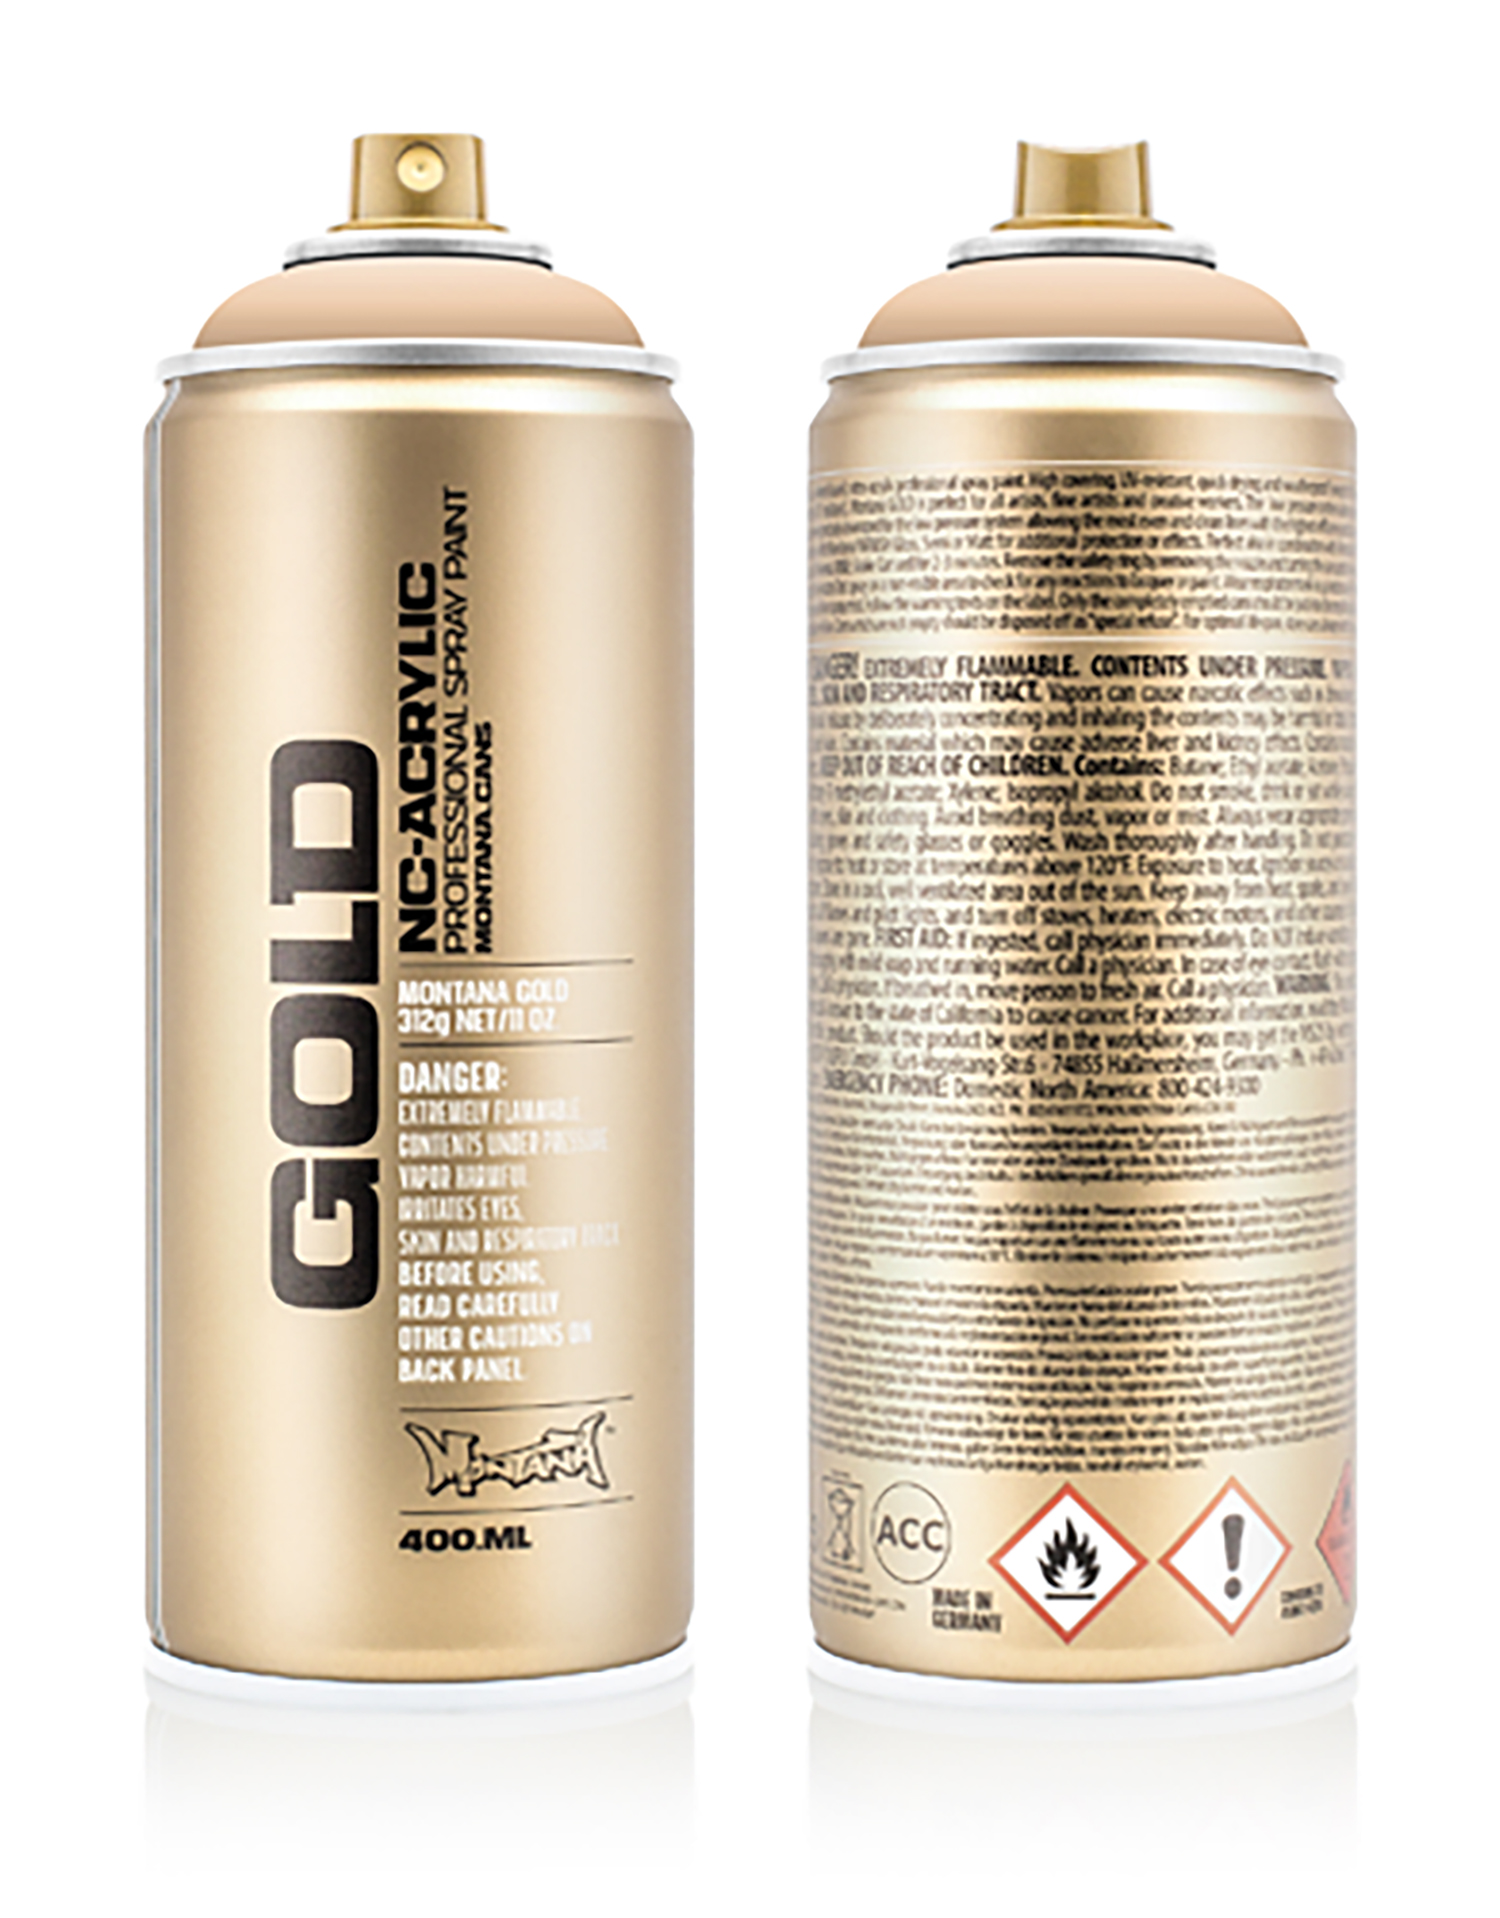 MONTANA-GOLD-SPRAY-400ML-G-1420